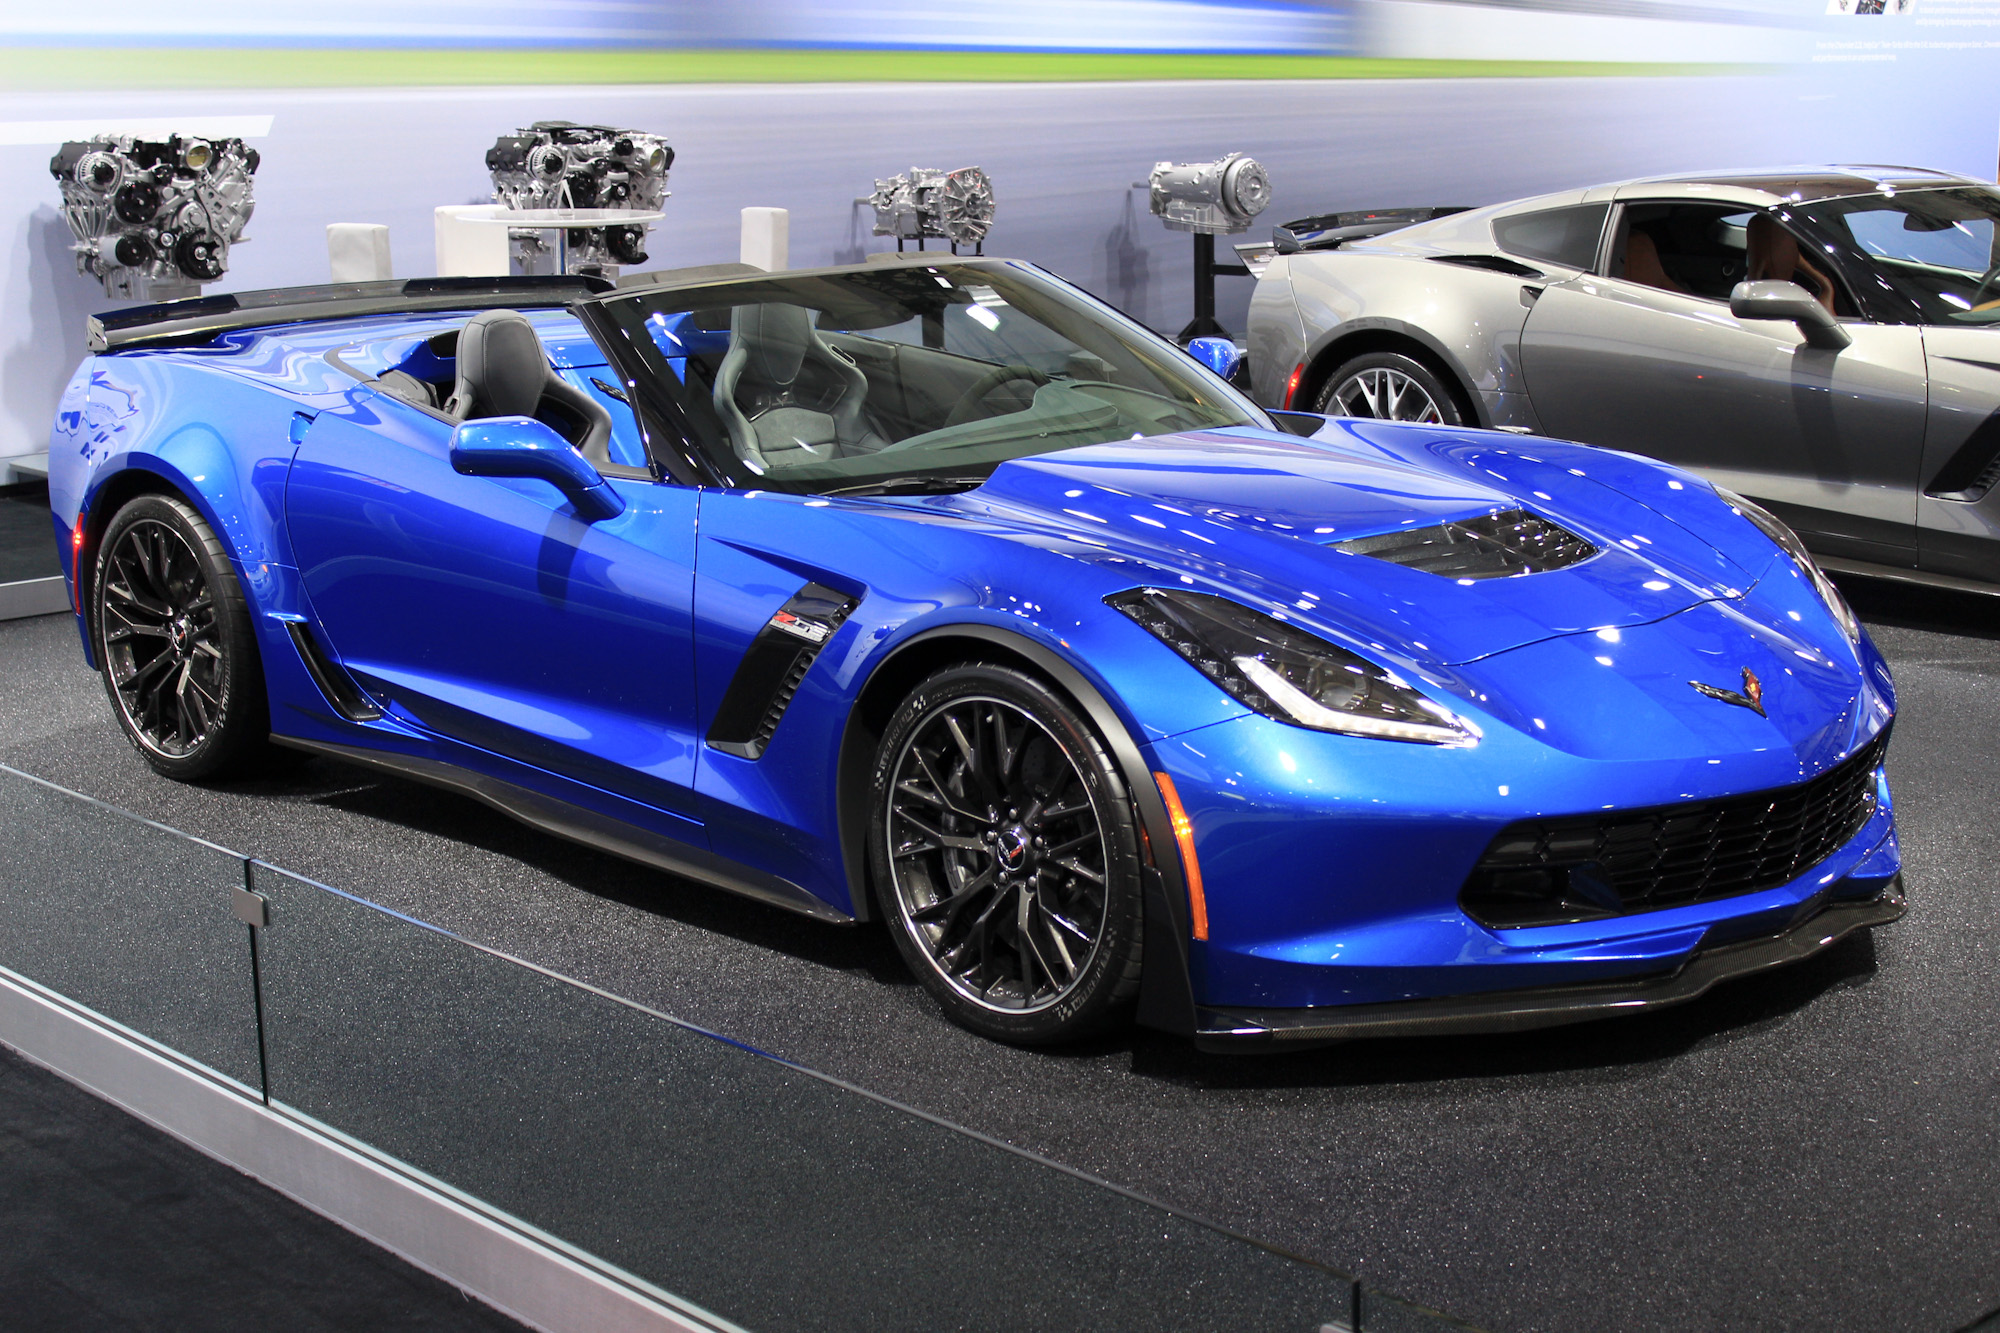 2015 Chevrolet Corvette Z06 Convertible 2014 New York